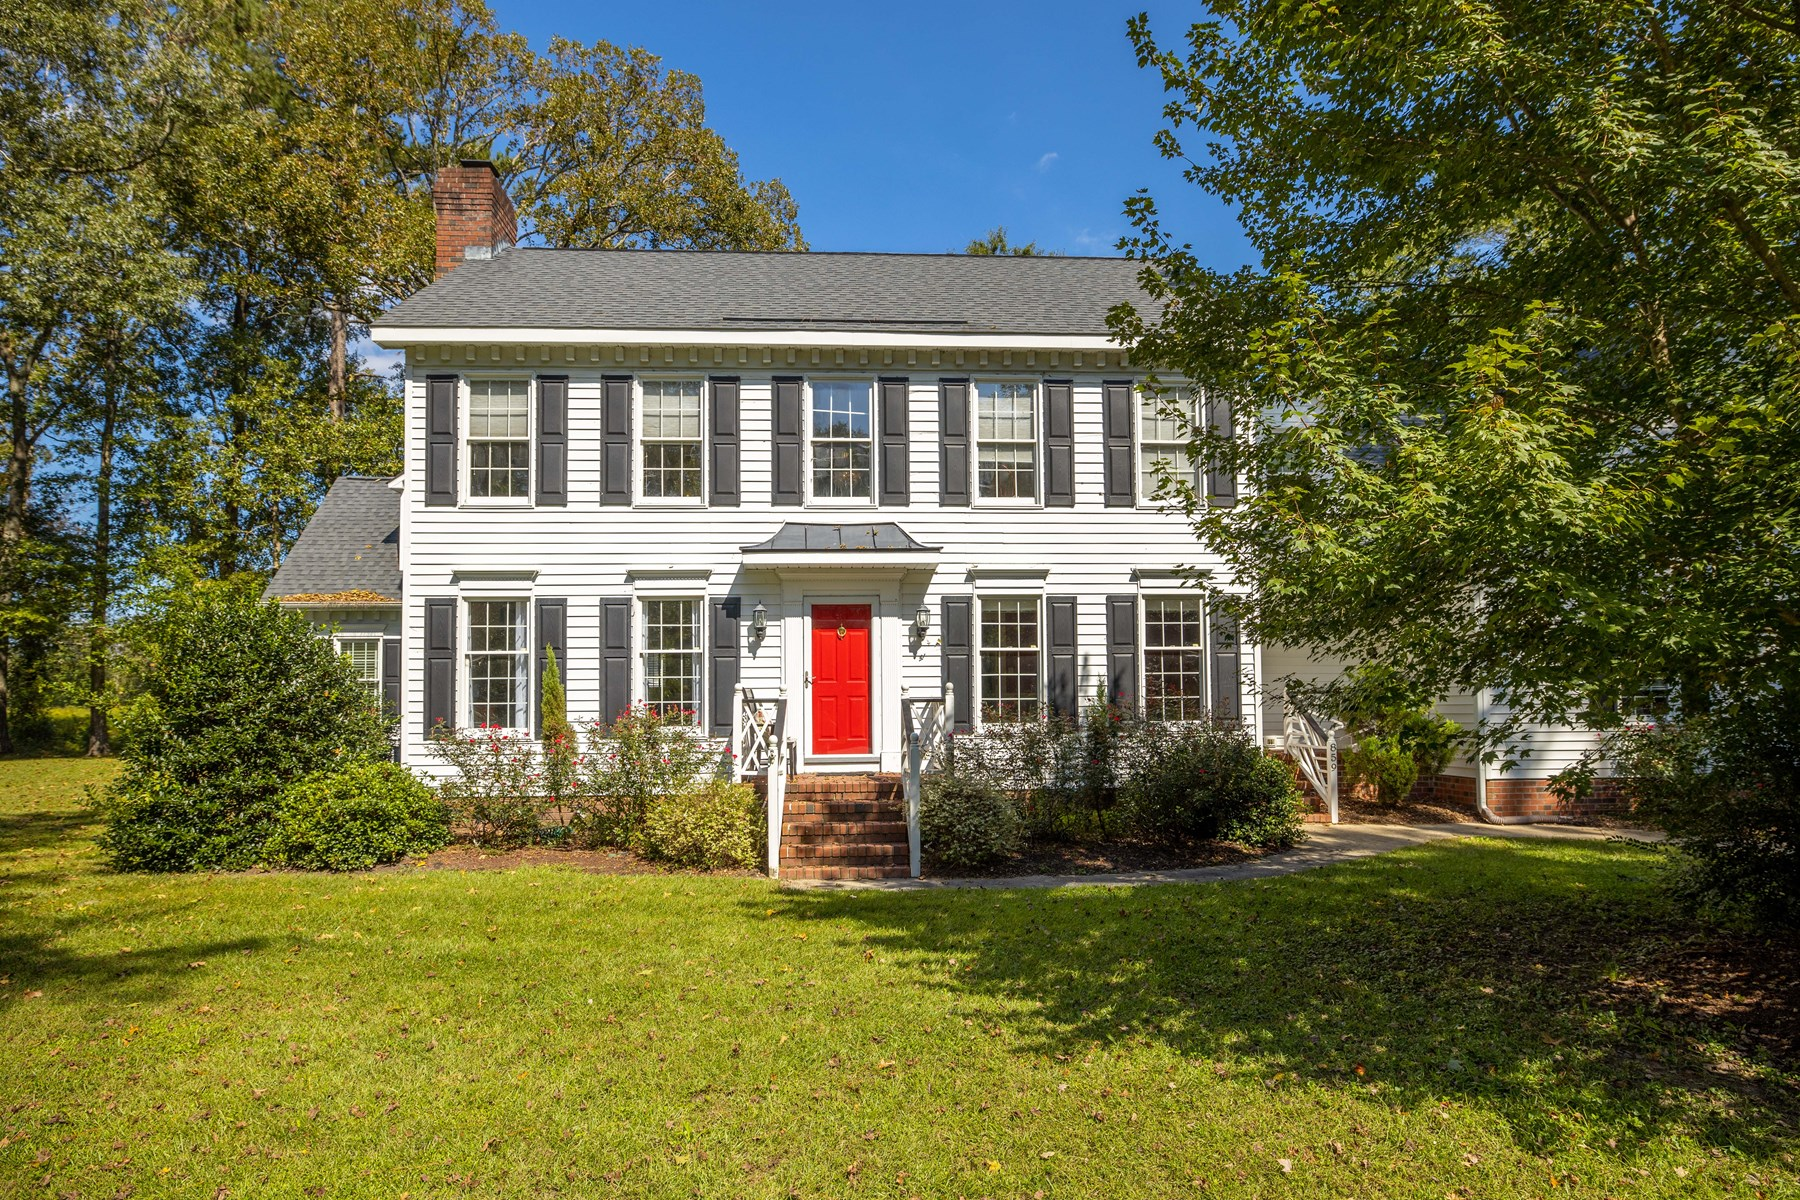 Country Home for Sale in Greenville, NC